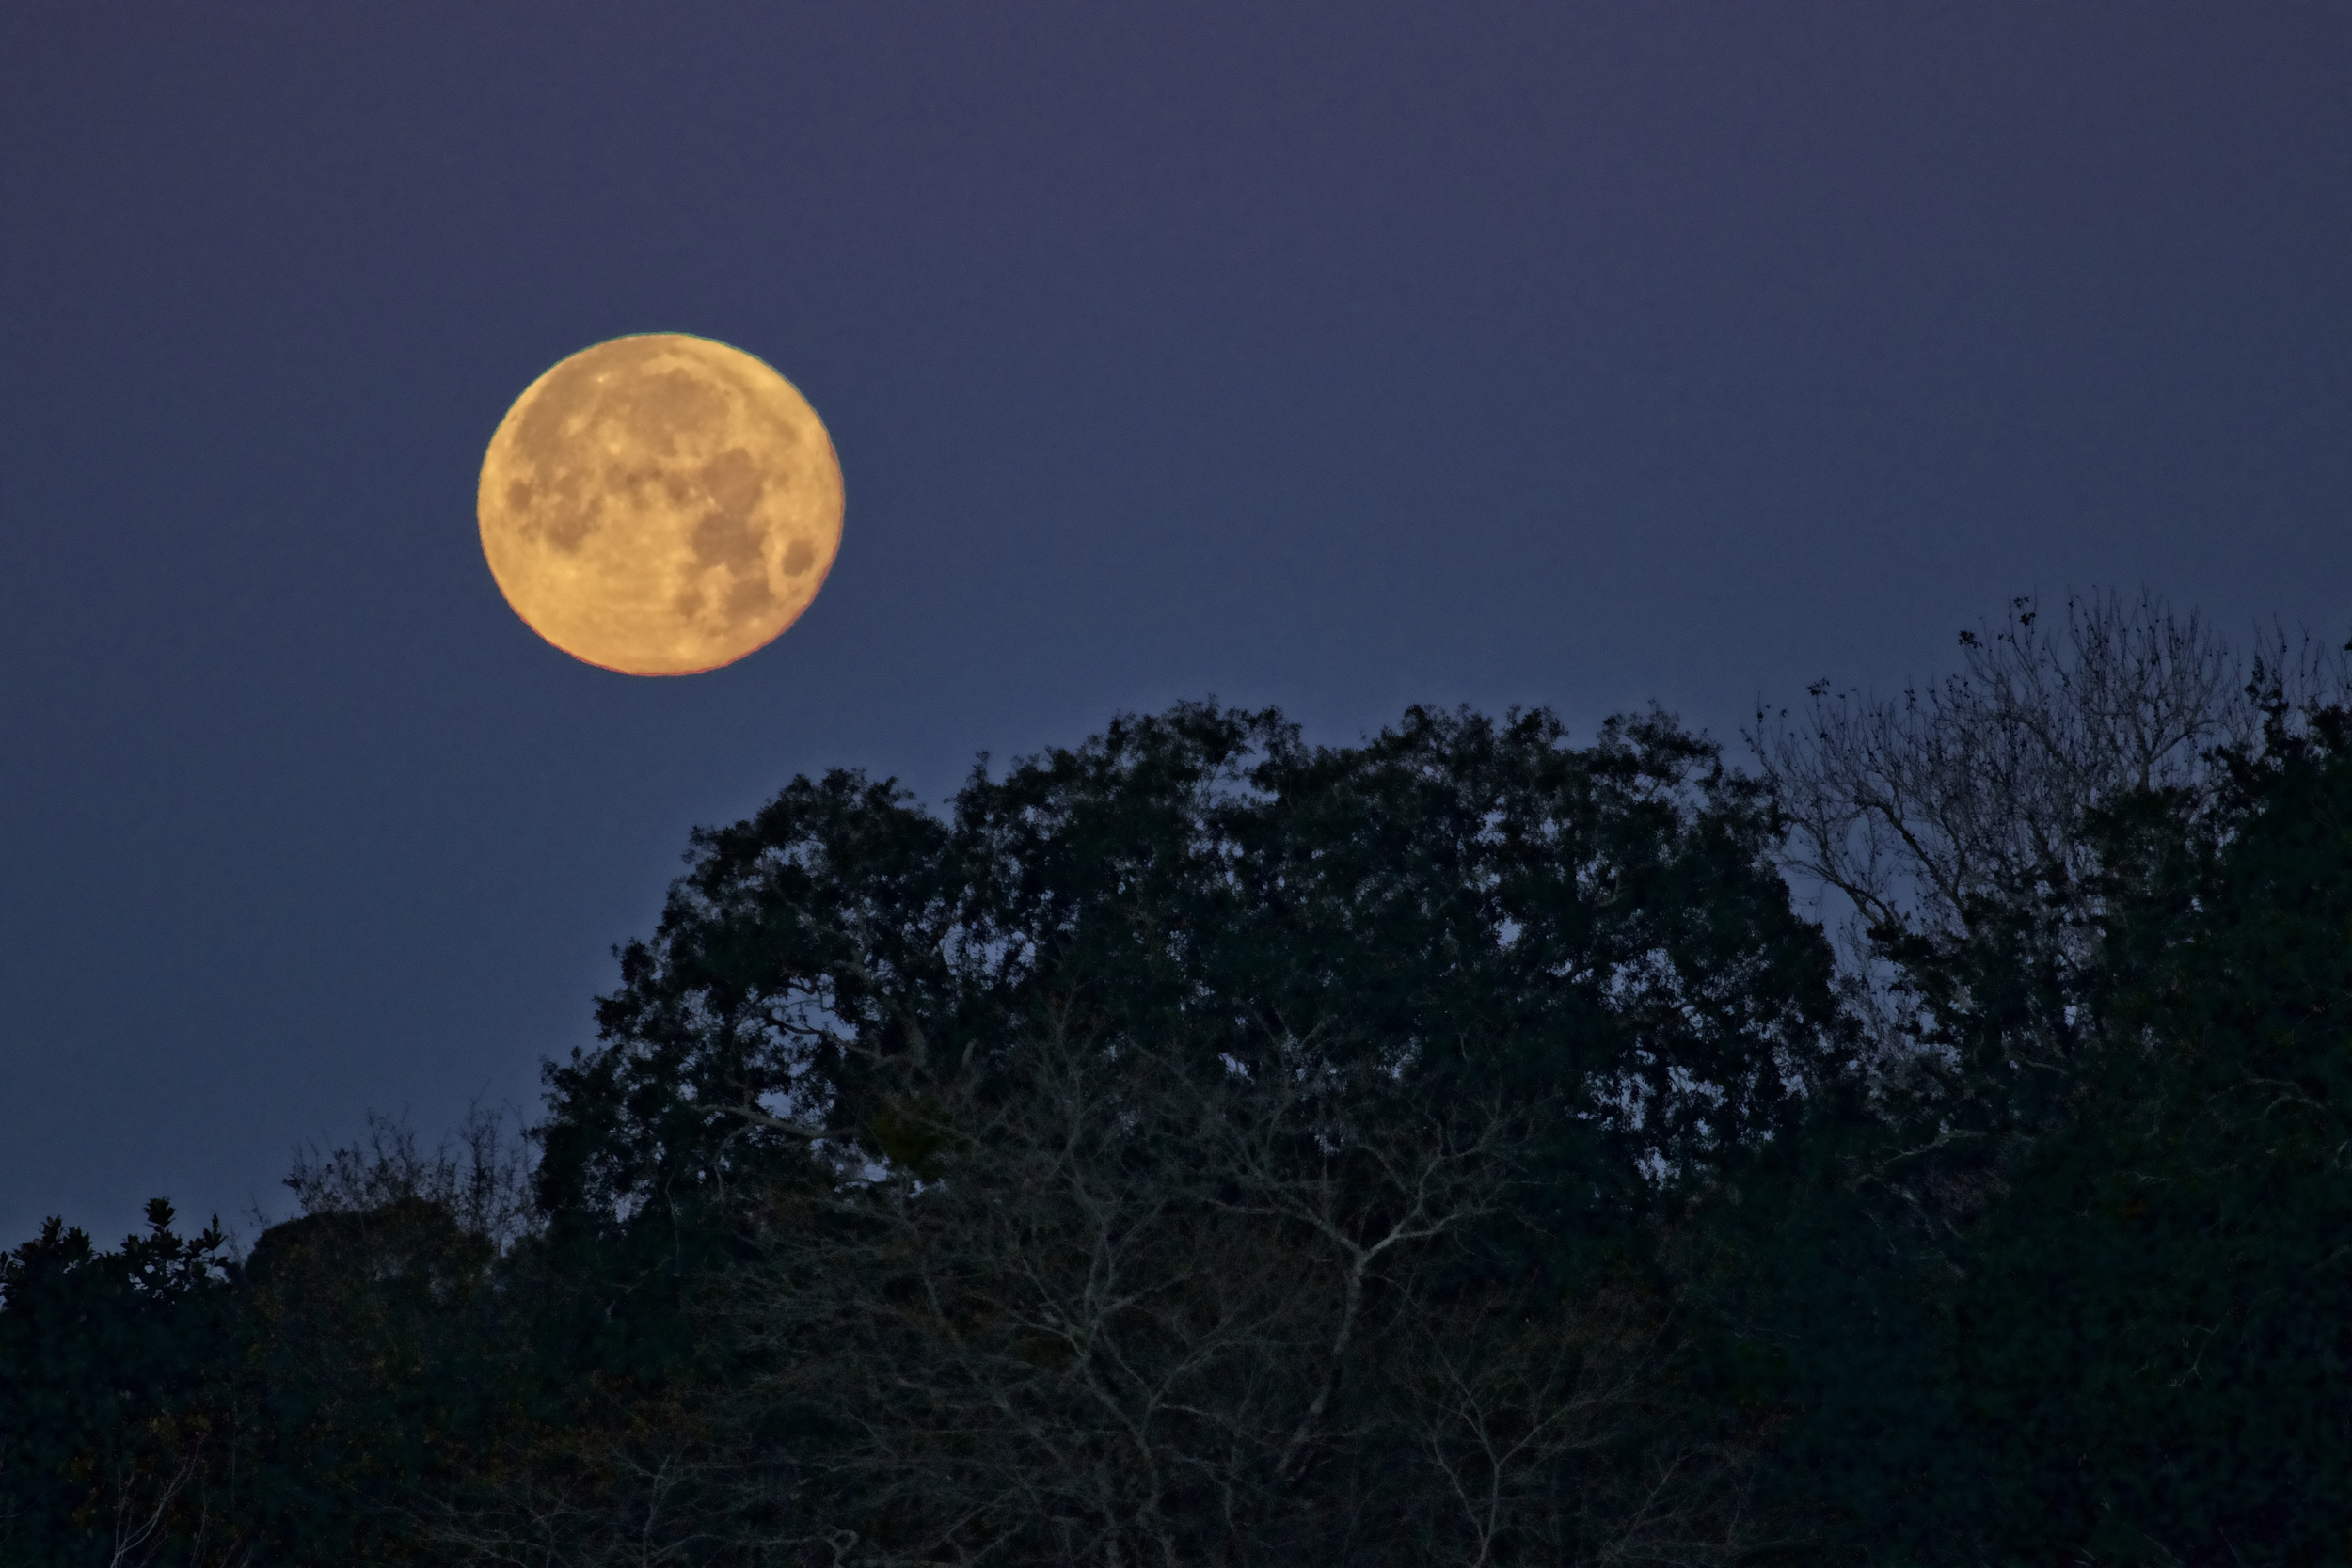 My attempt at Blue Hour on the Broward, Full moonset prior to dawn..